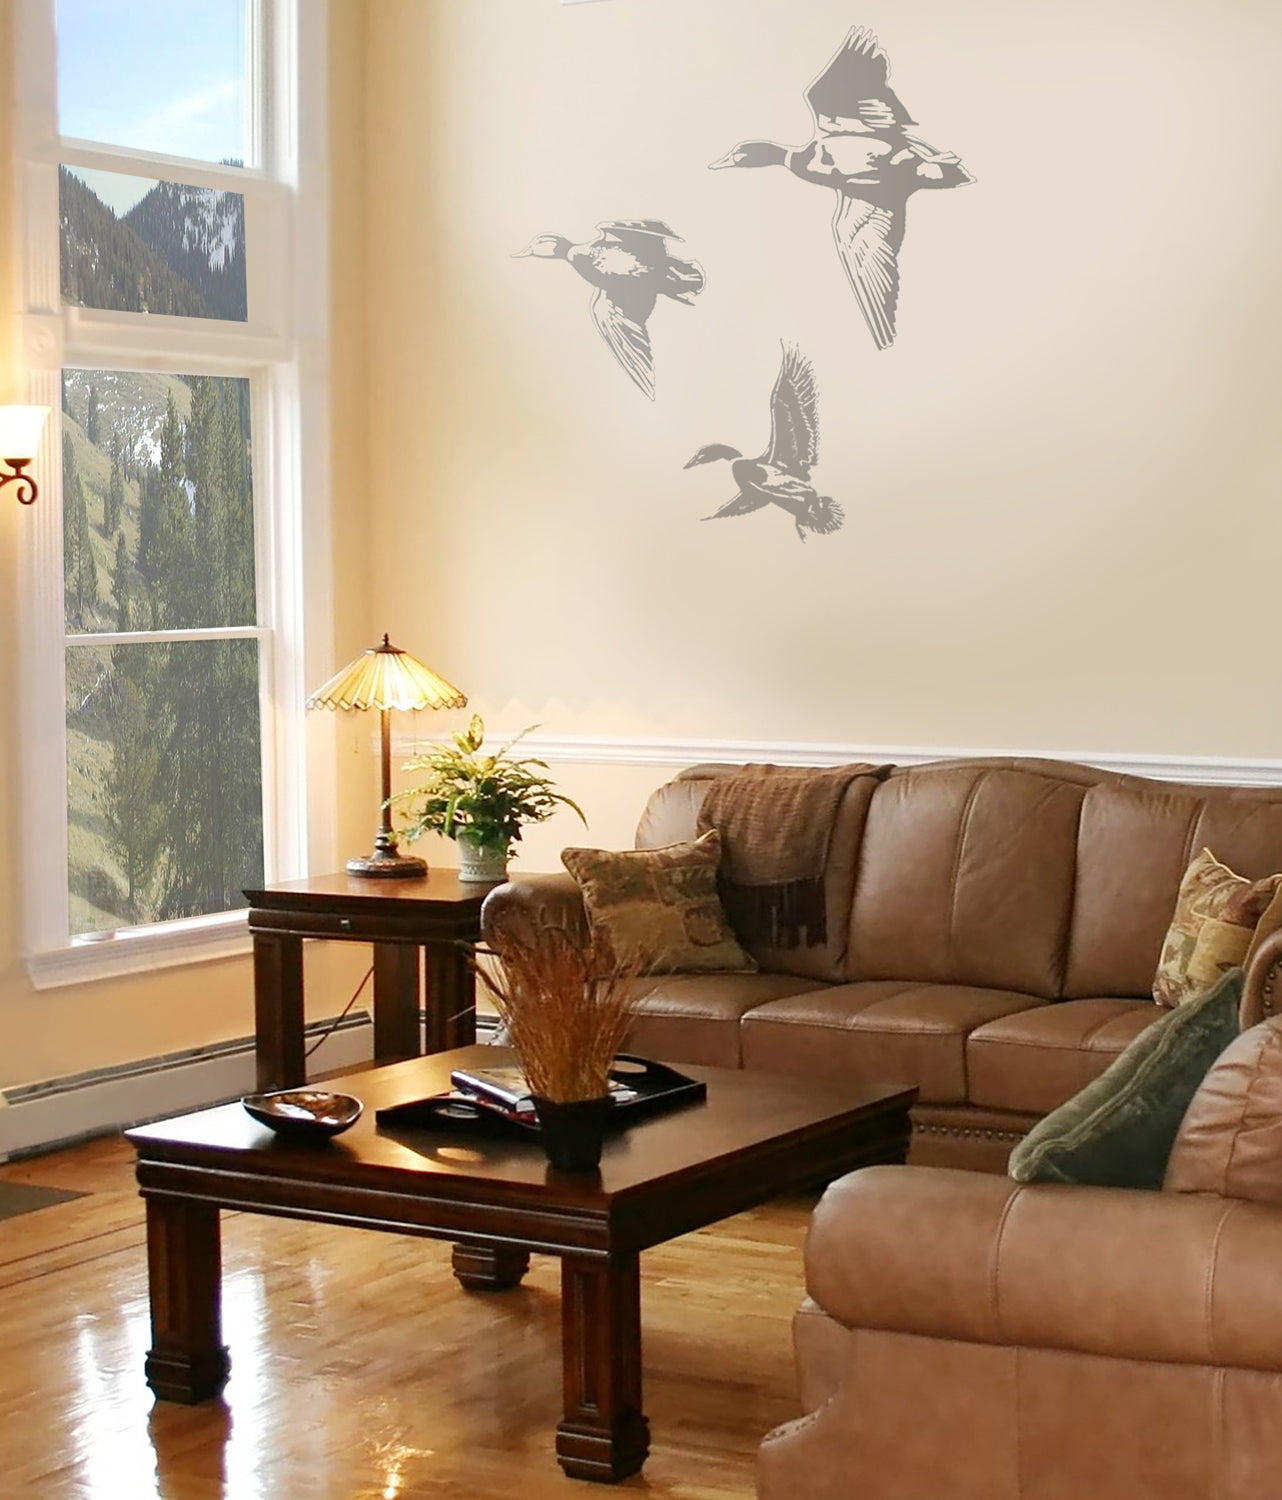 Duck Sudden Shadow Wall Decal